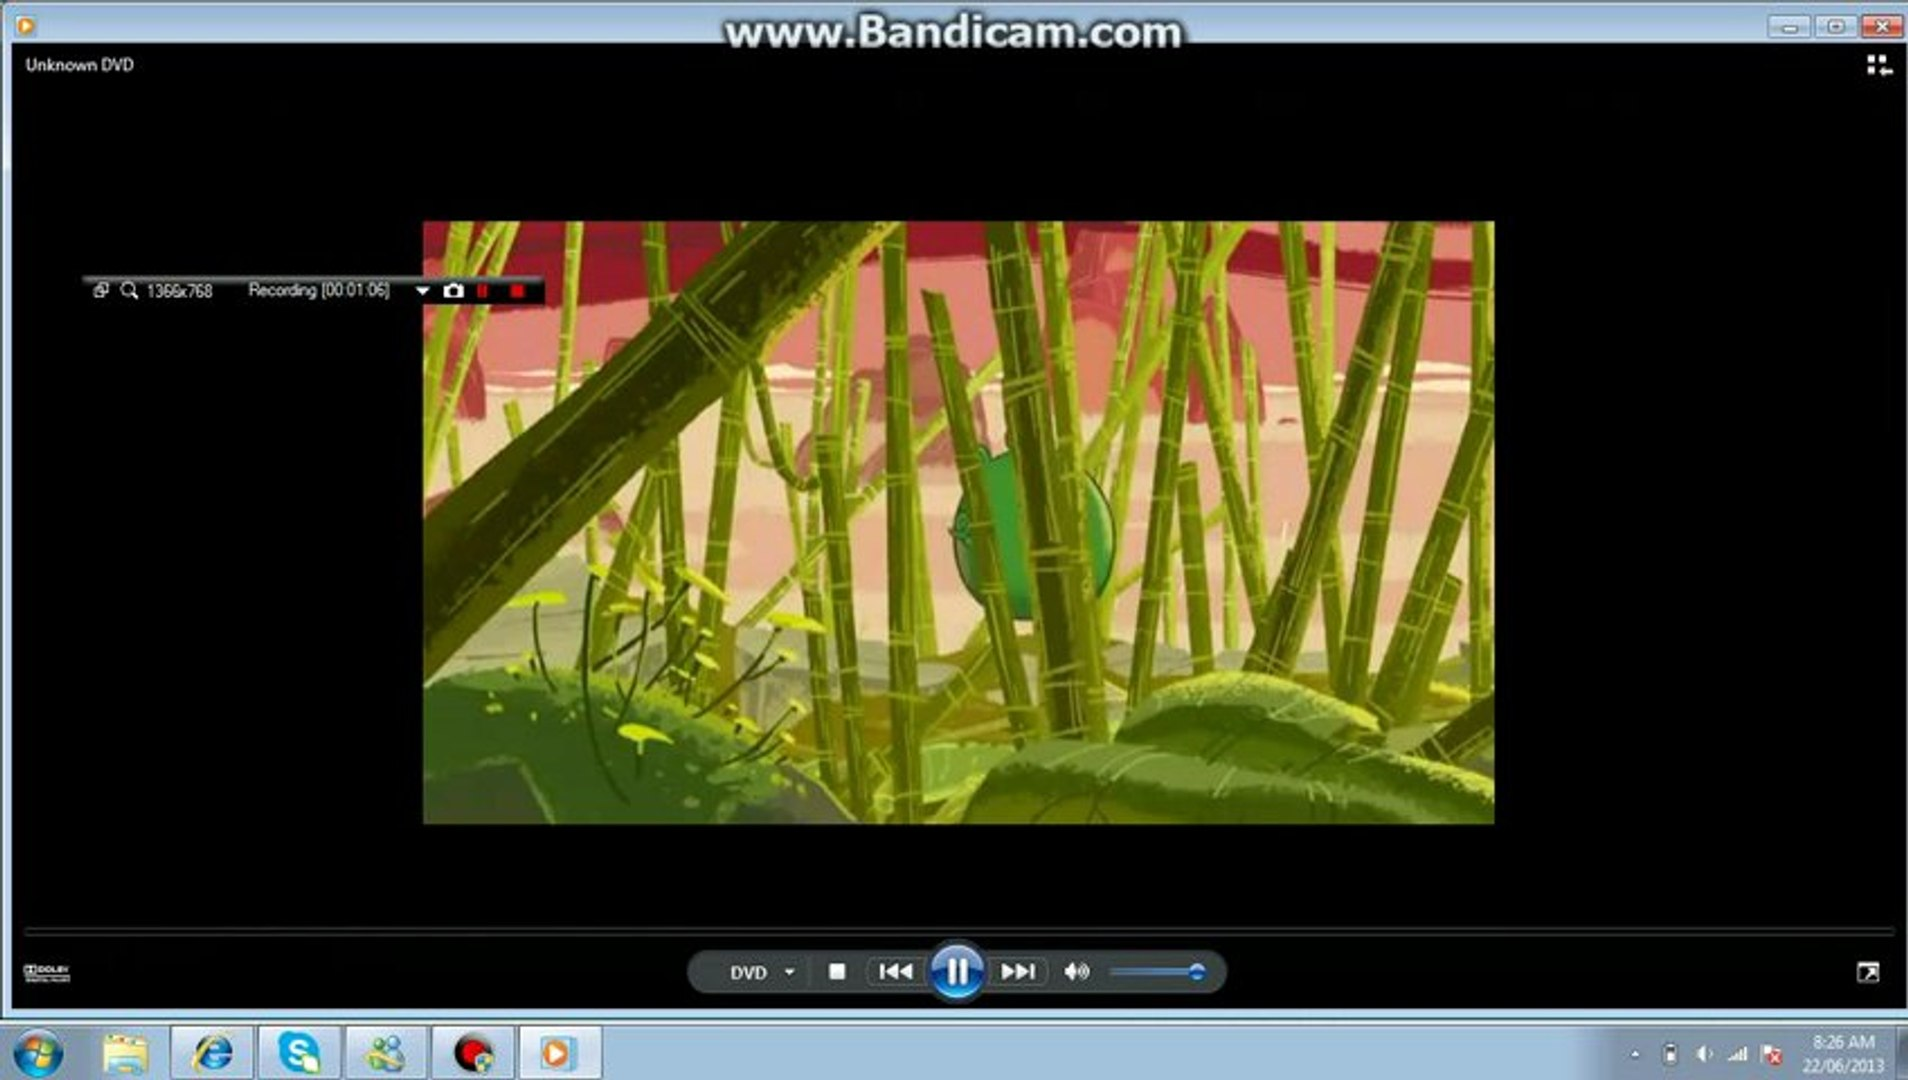 Opening To Angry Birds On Dvd Dvd 2013 Dvd Aus Video Dailymotion